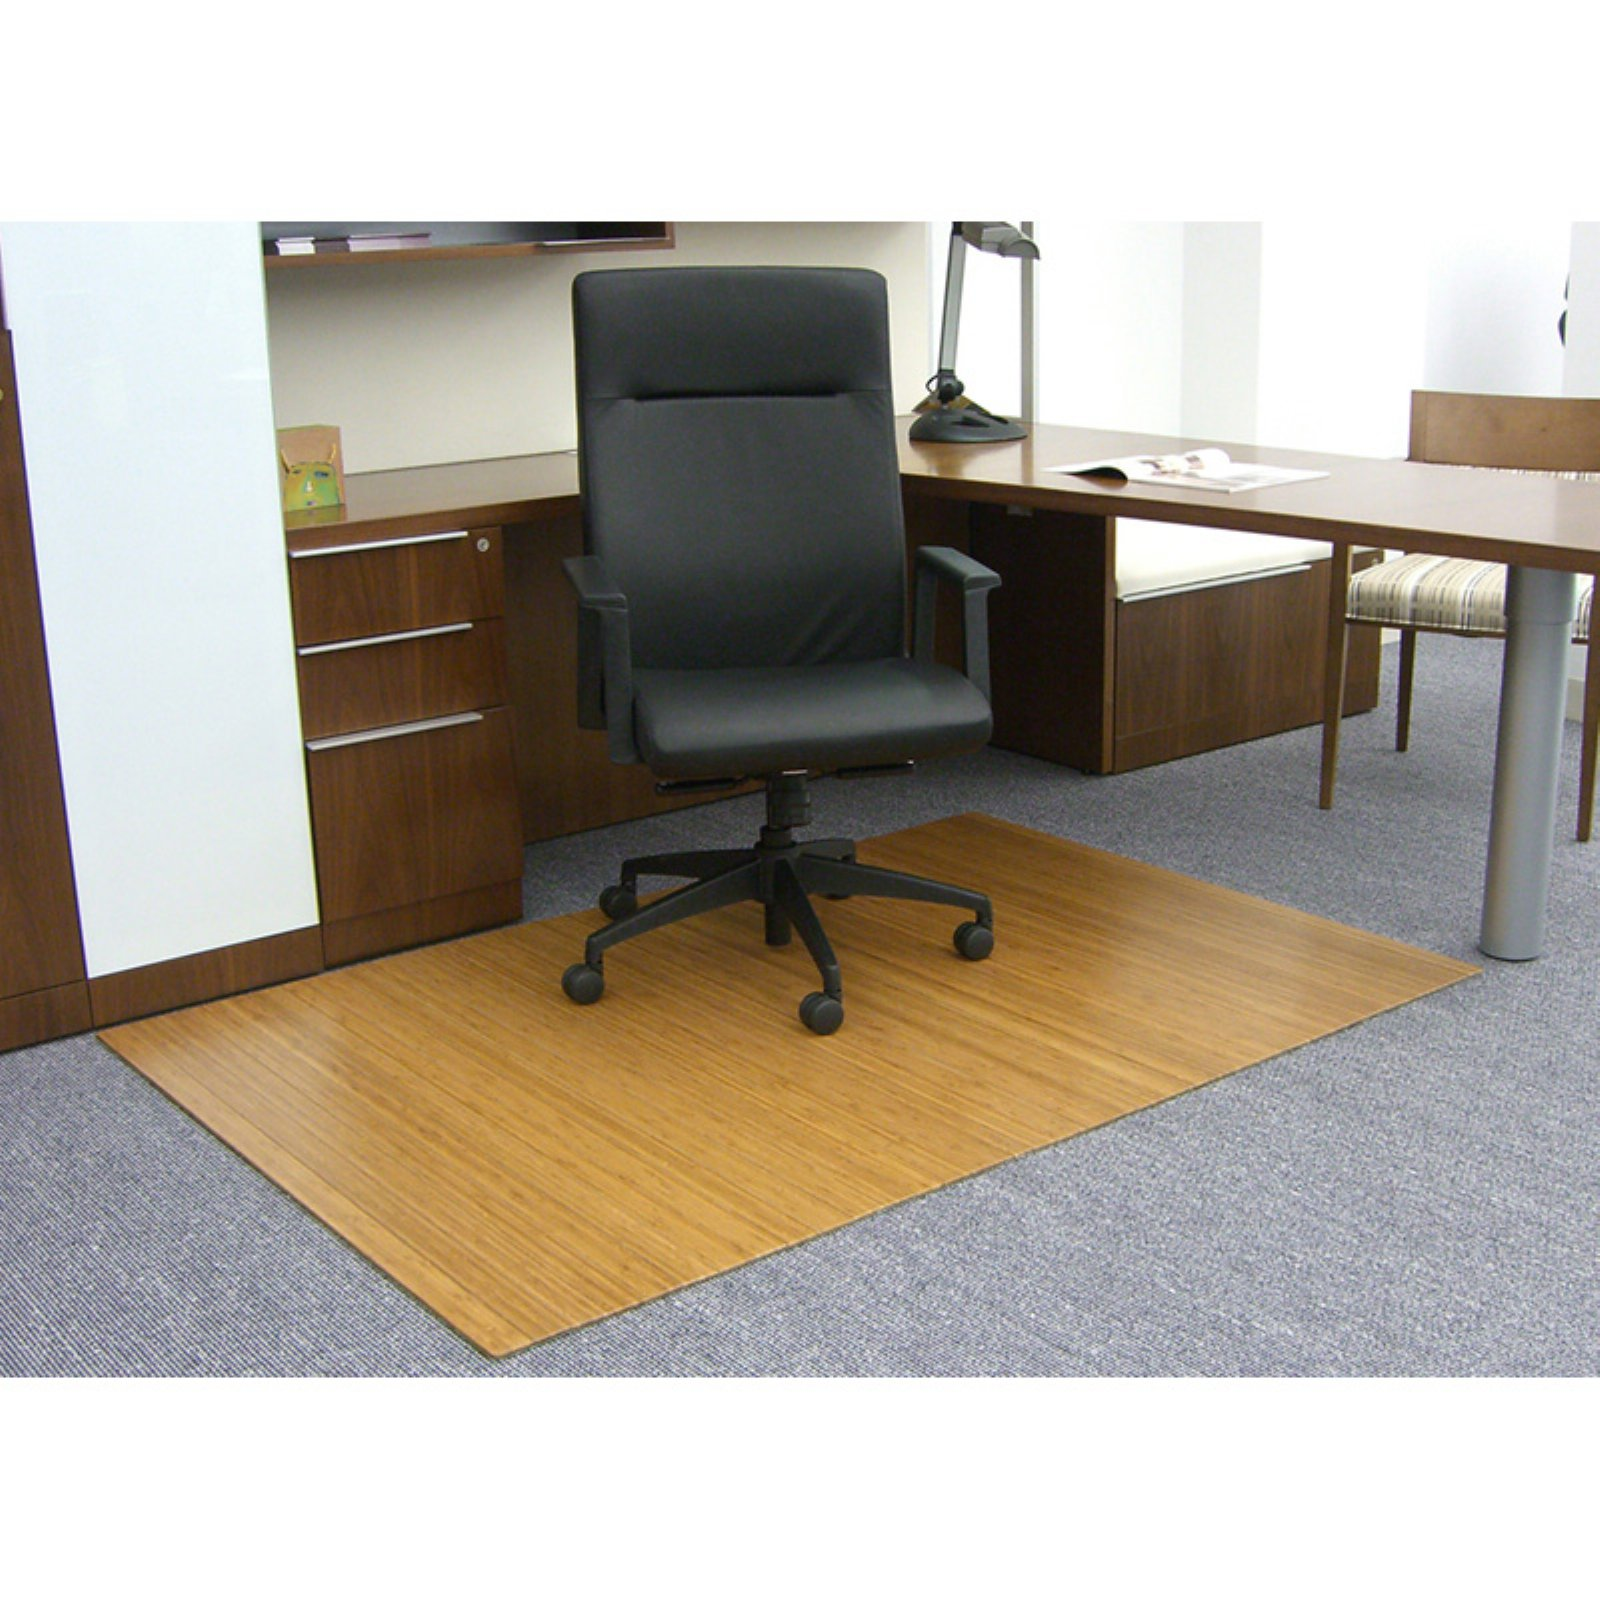 "Bamboo Roll-Up Chairmat, 72"" x 48"" - No Lip"